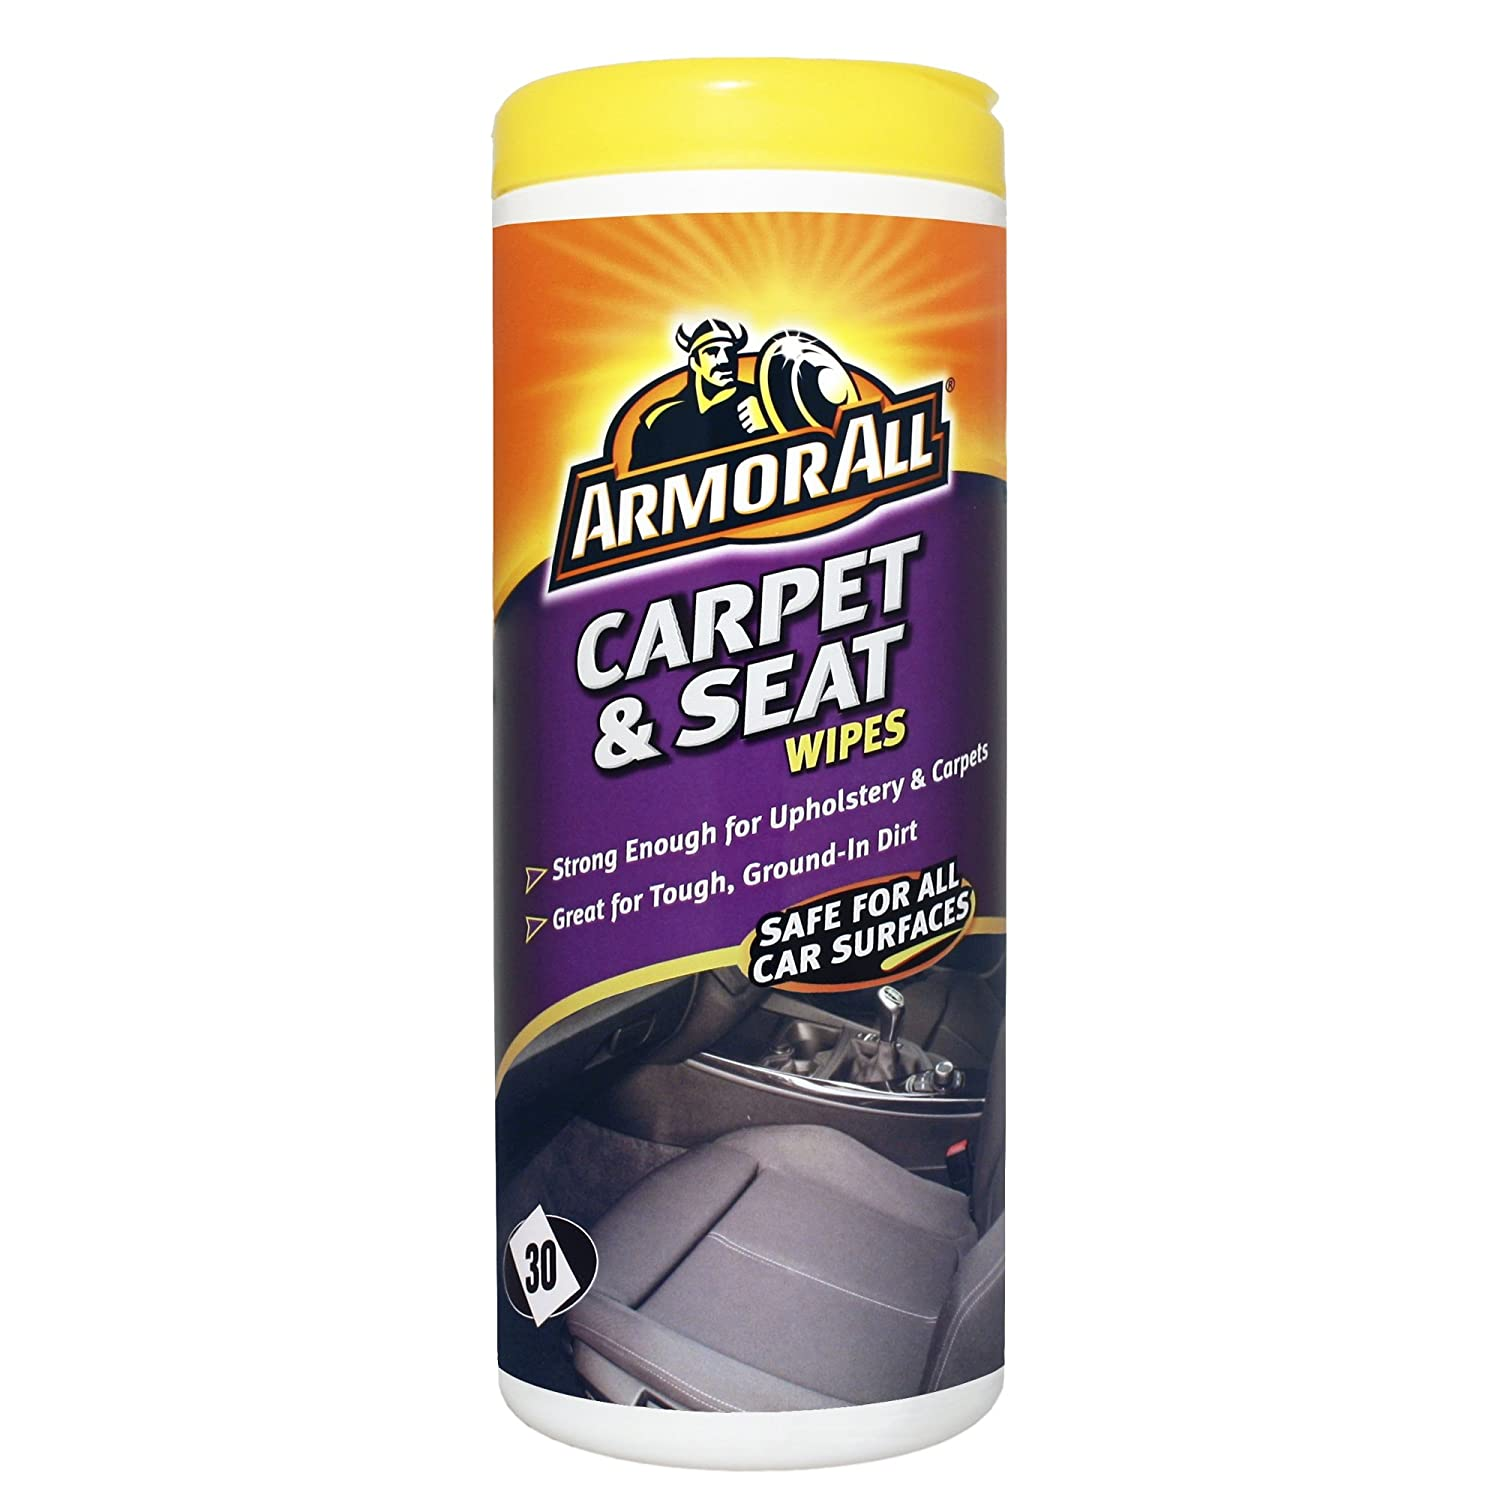 Armorall Carpet & Seat Wipes (25) 80%OFF